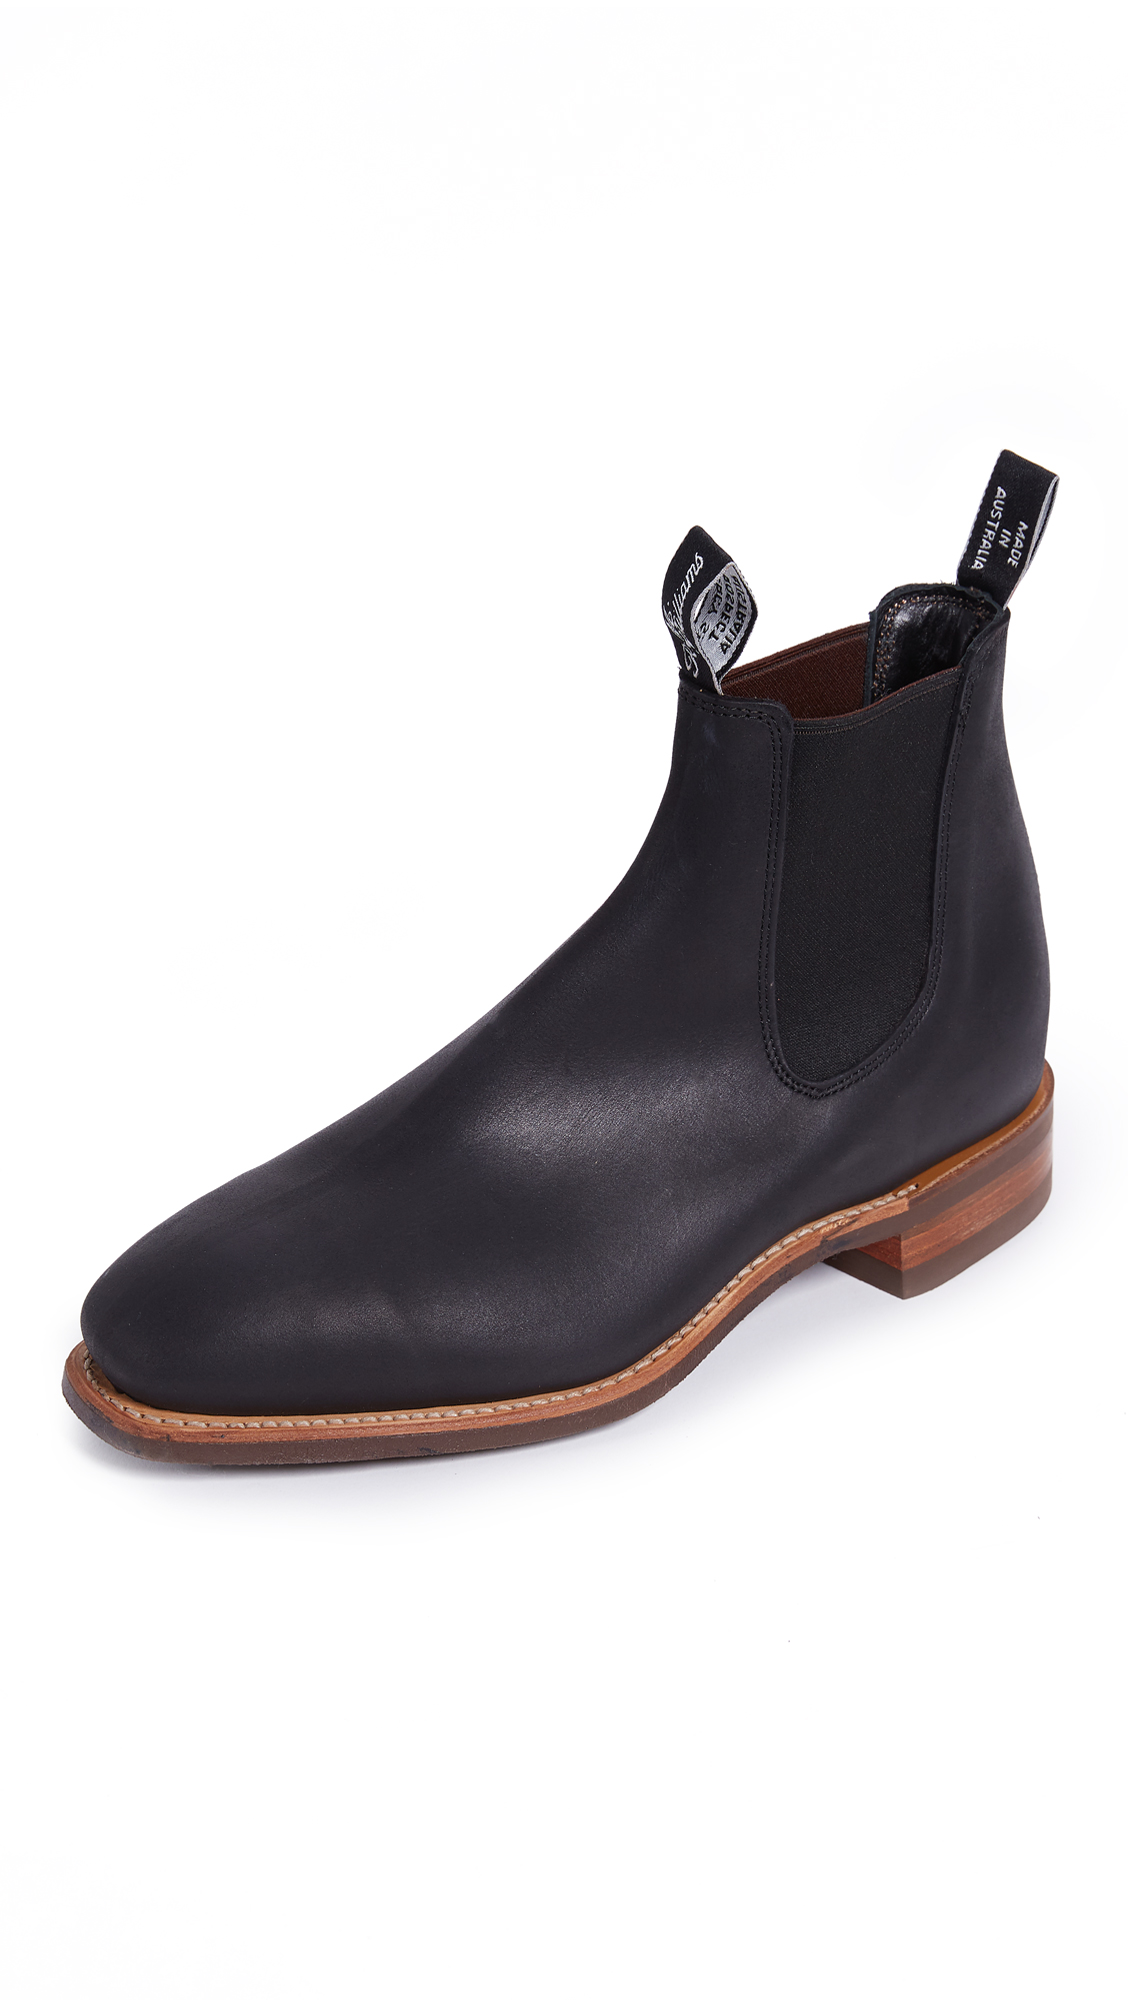 R.M.WILLIAMS COMFORT RM DISTRESSED LEATHER CHELSEA BOOTS